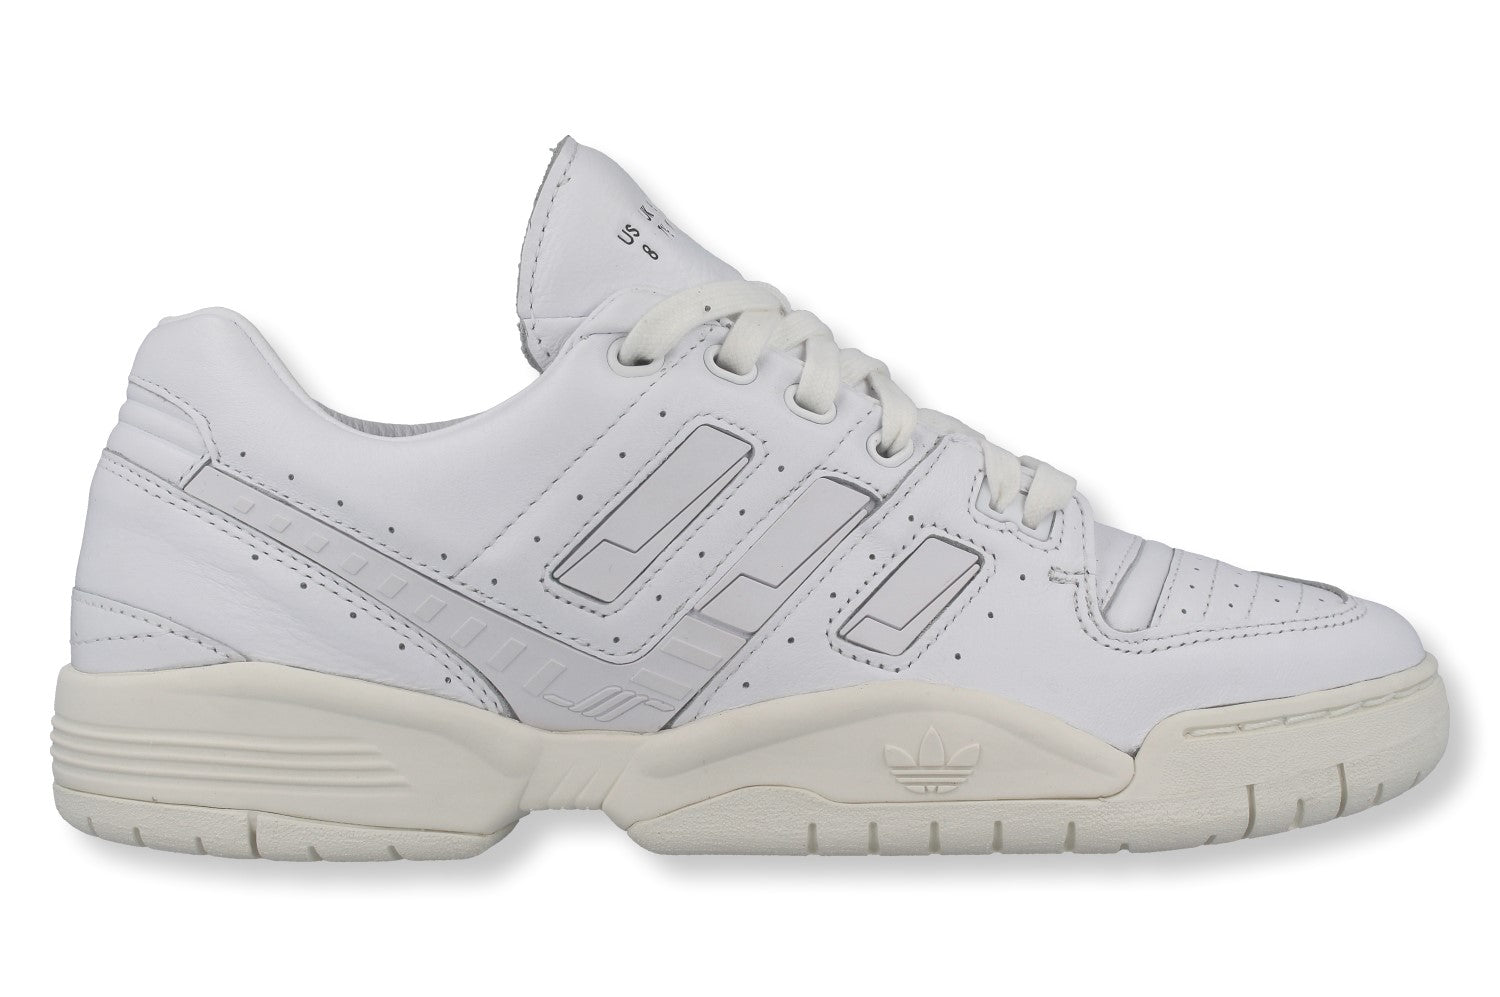 cheapest price great fit reasonably priced Torsion Comp